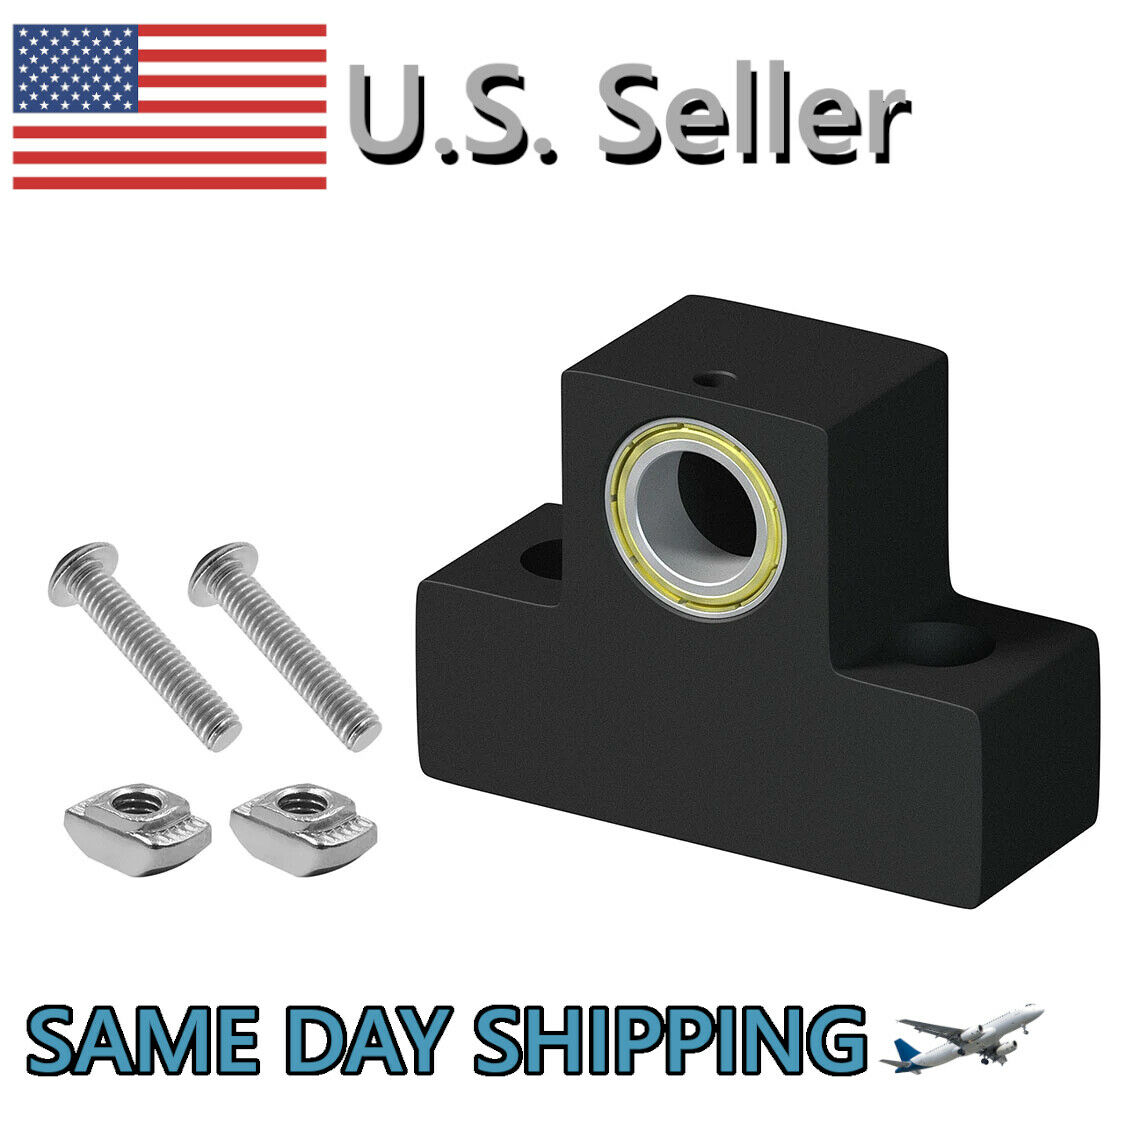 Z-Axis Lead Screw Top Mount Metal Z-Rod Bearing Housing For CR-10 Ender 3 Pro